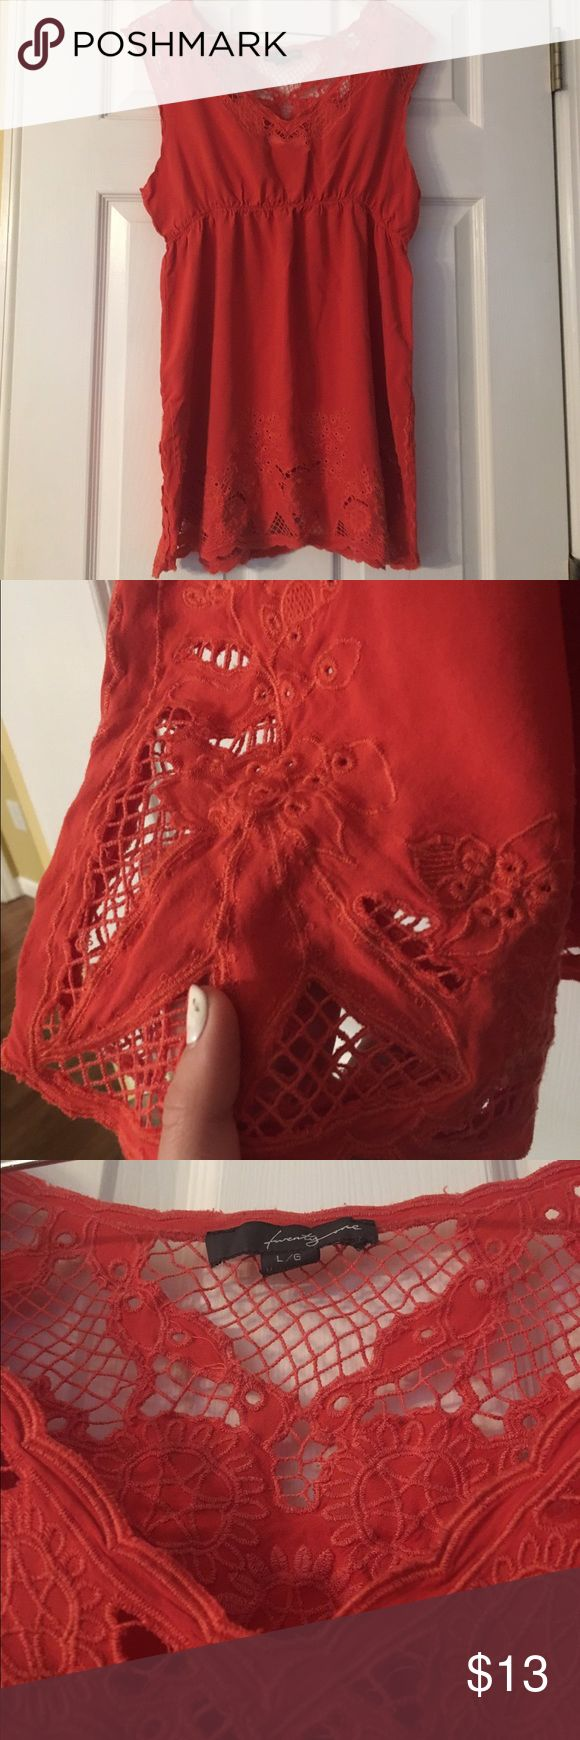 """Twenty One Dress🖌 Really really cute dress.. A red/orange color. Has cute sewn patterns and designs! Is true to size but will be a bit short if you are over 5'5"""". Comment with any questions or other concerns! It's in near perfect condition and an awesome spring/summer dress😍☀️ offers are very welcome poshers!!! Twenty One Dresses"""